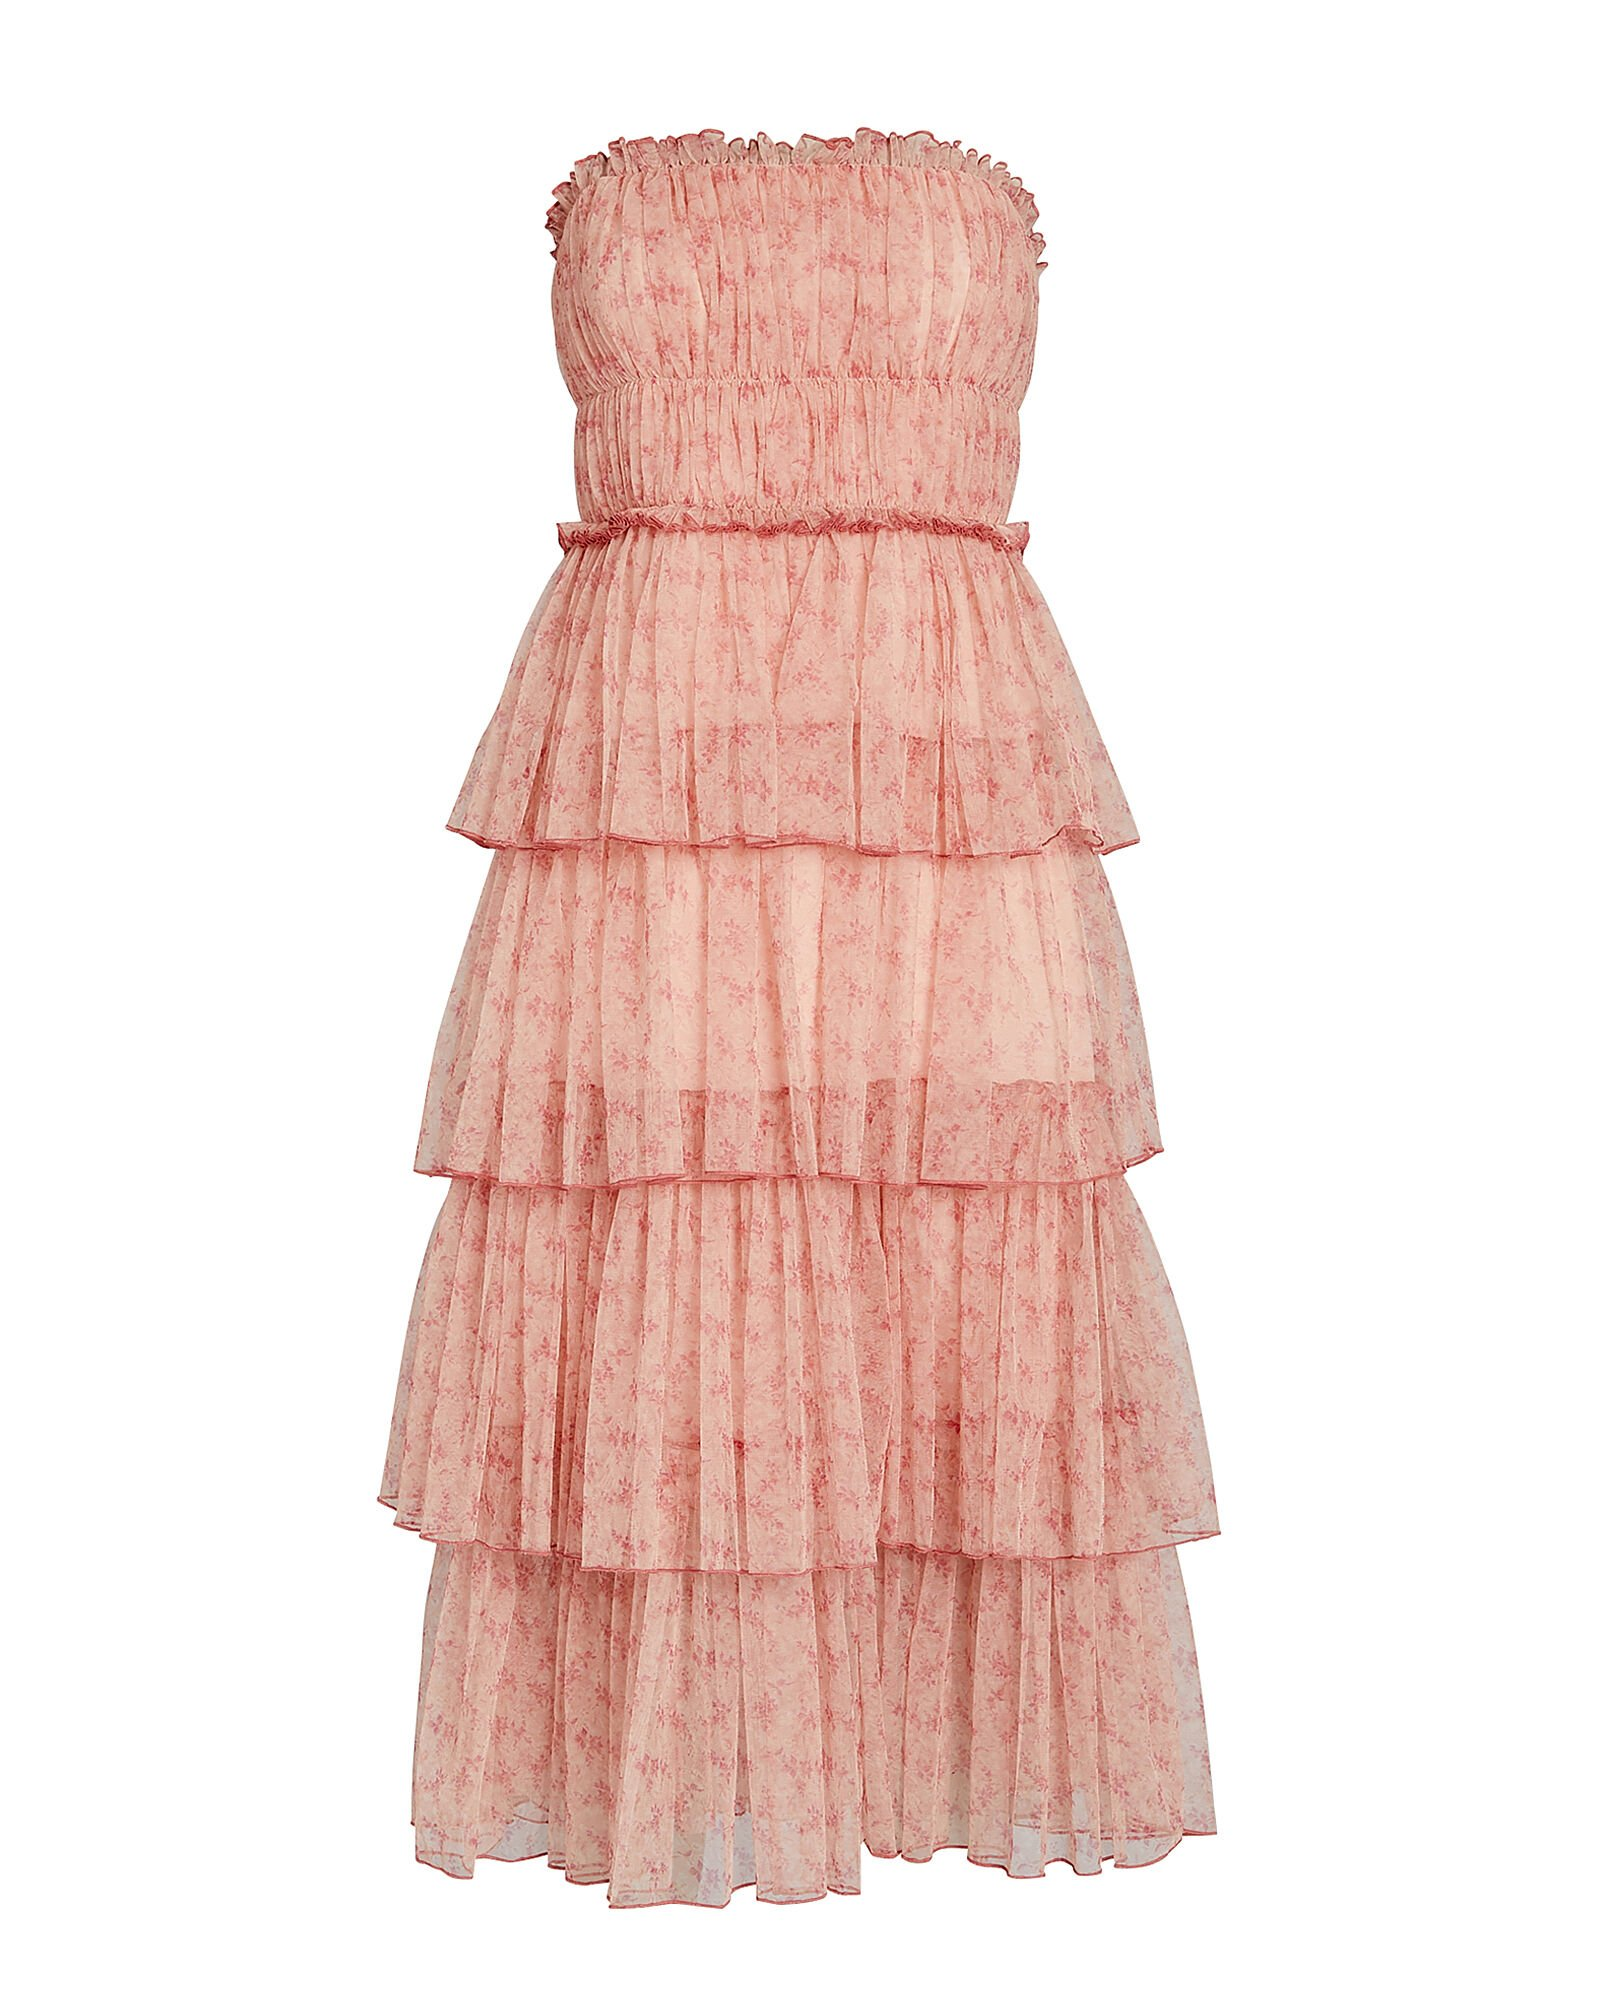 Harlyn Tiered Floral Tulle Dress, PALE PINK, hi-res